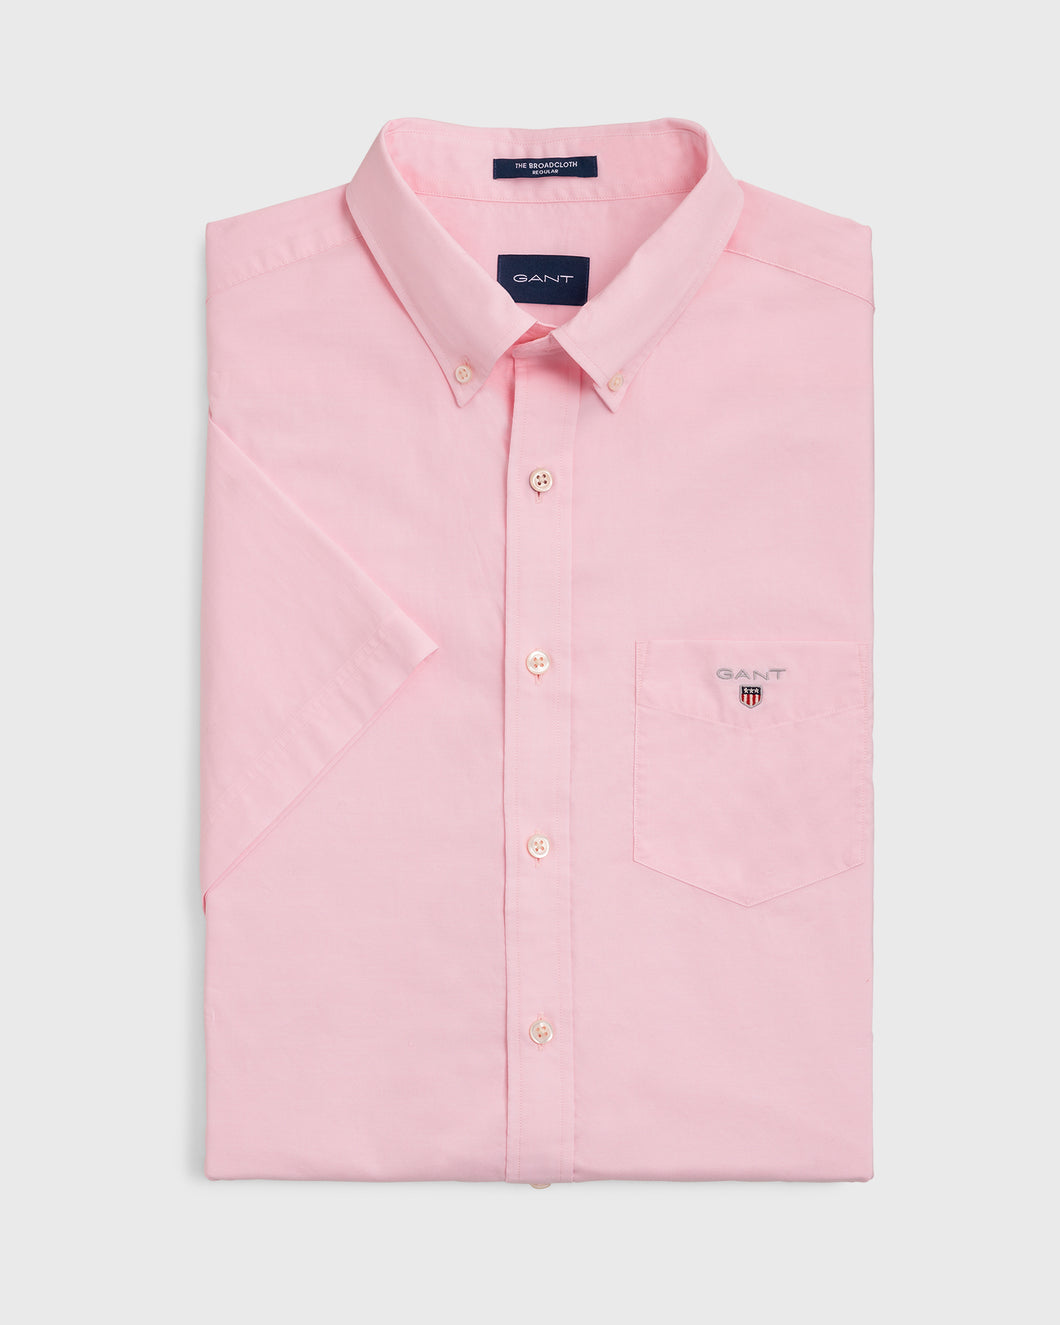 Gant The Broadcloth Short Sleeve Shirt Rose